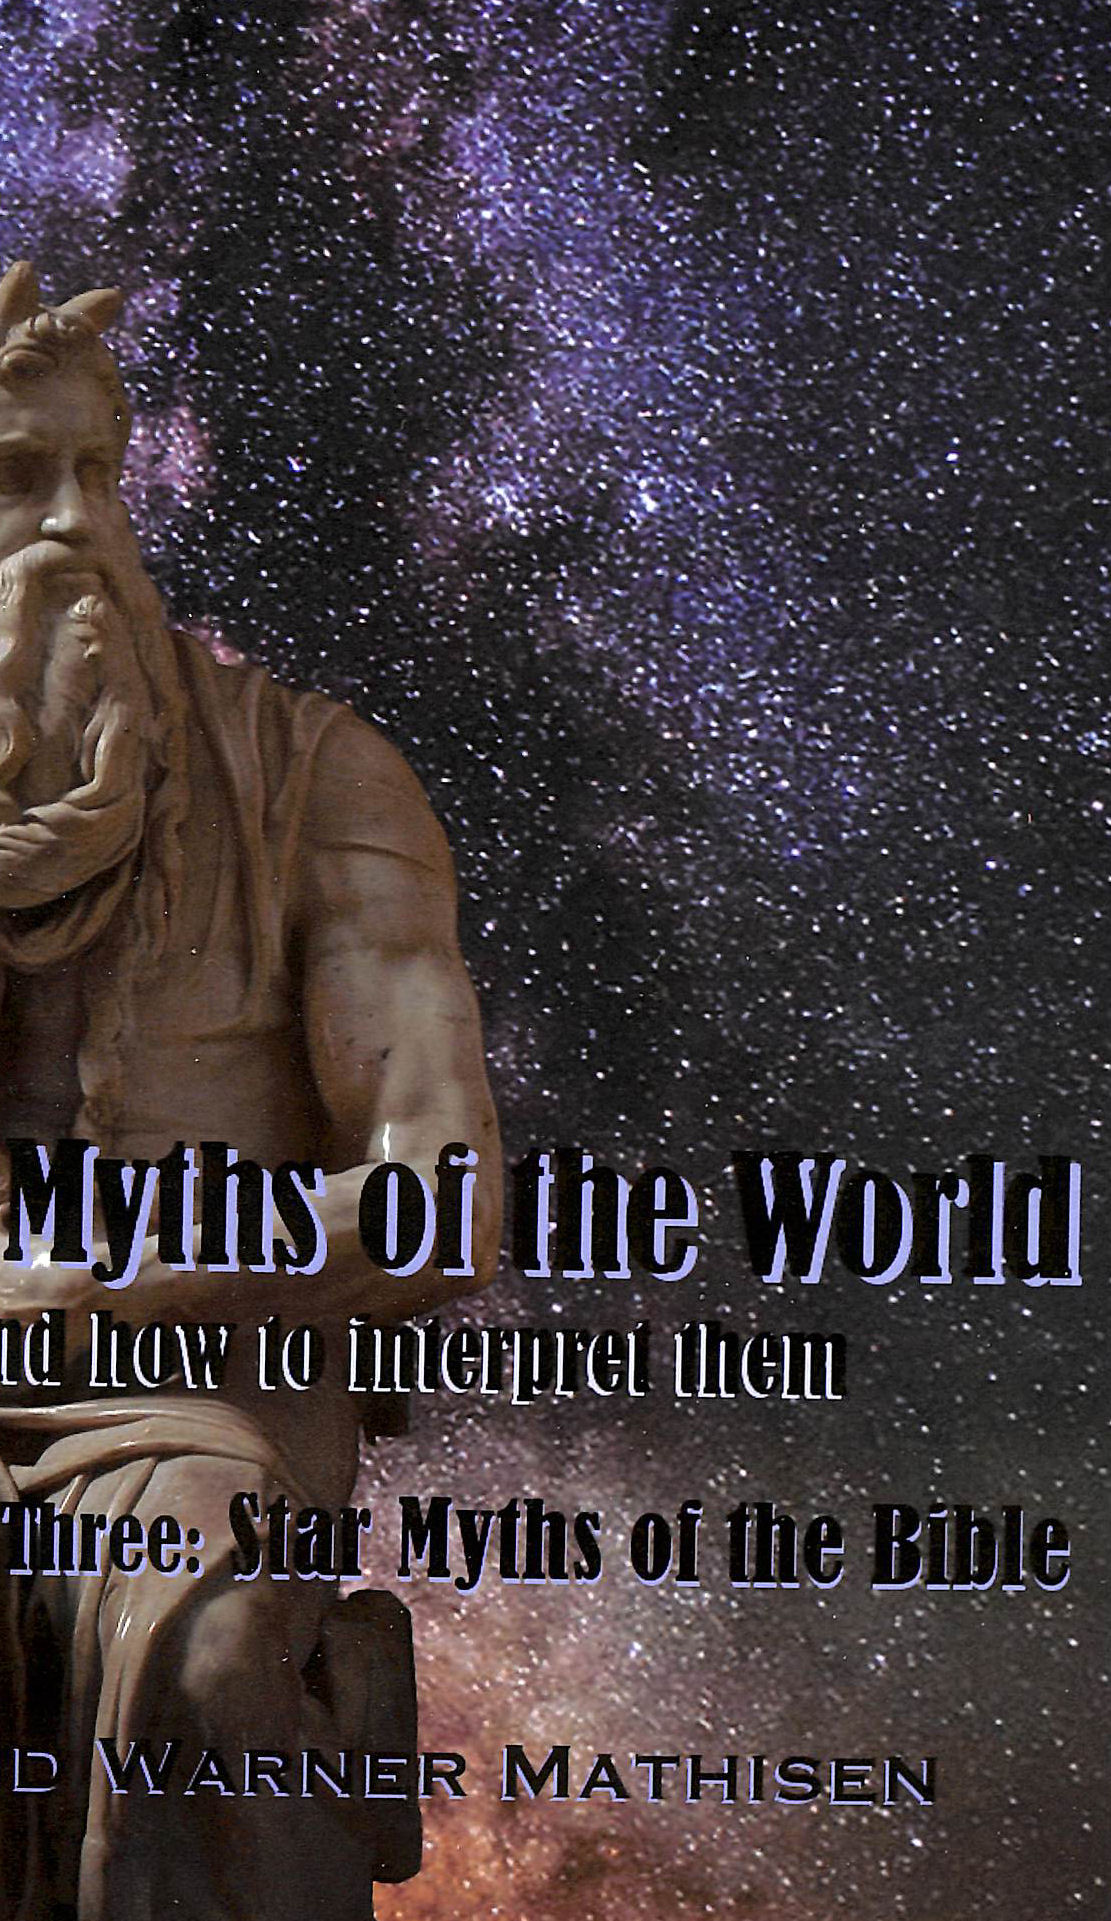 Image for Star Myths of the World, Volume Three: Star Myths of the Bible